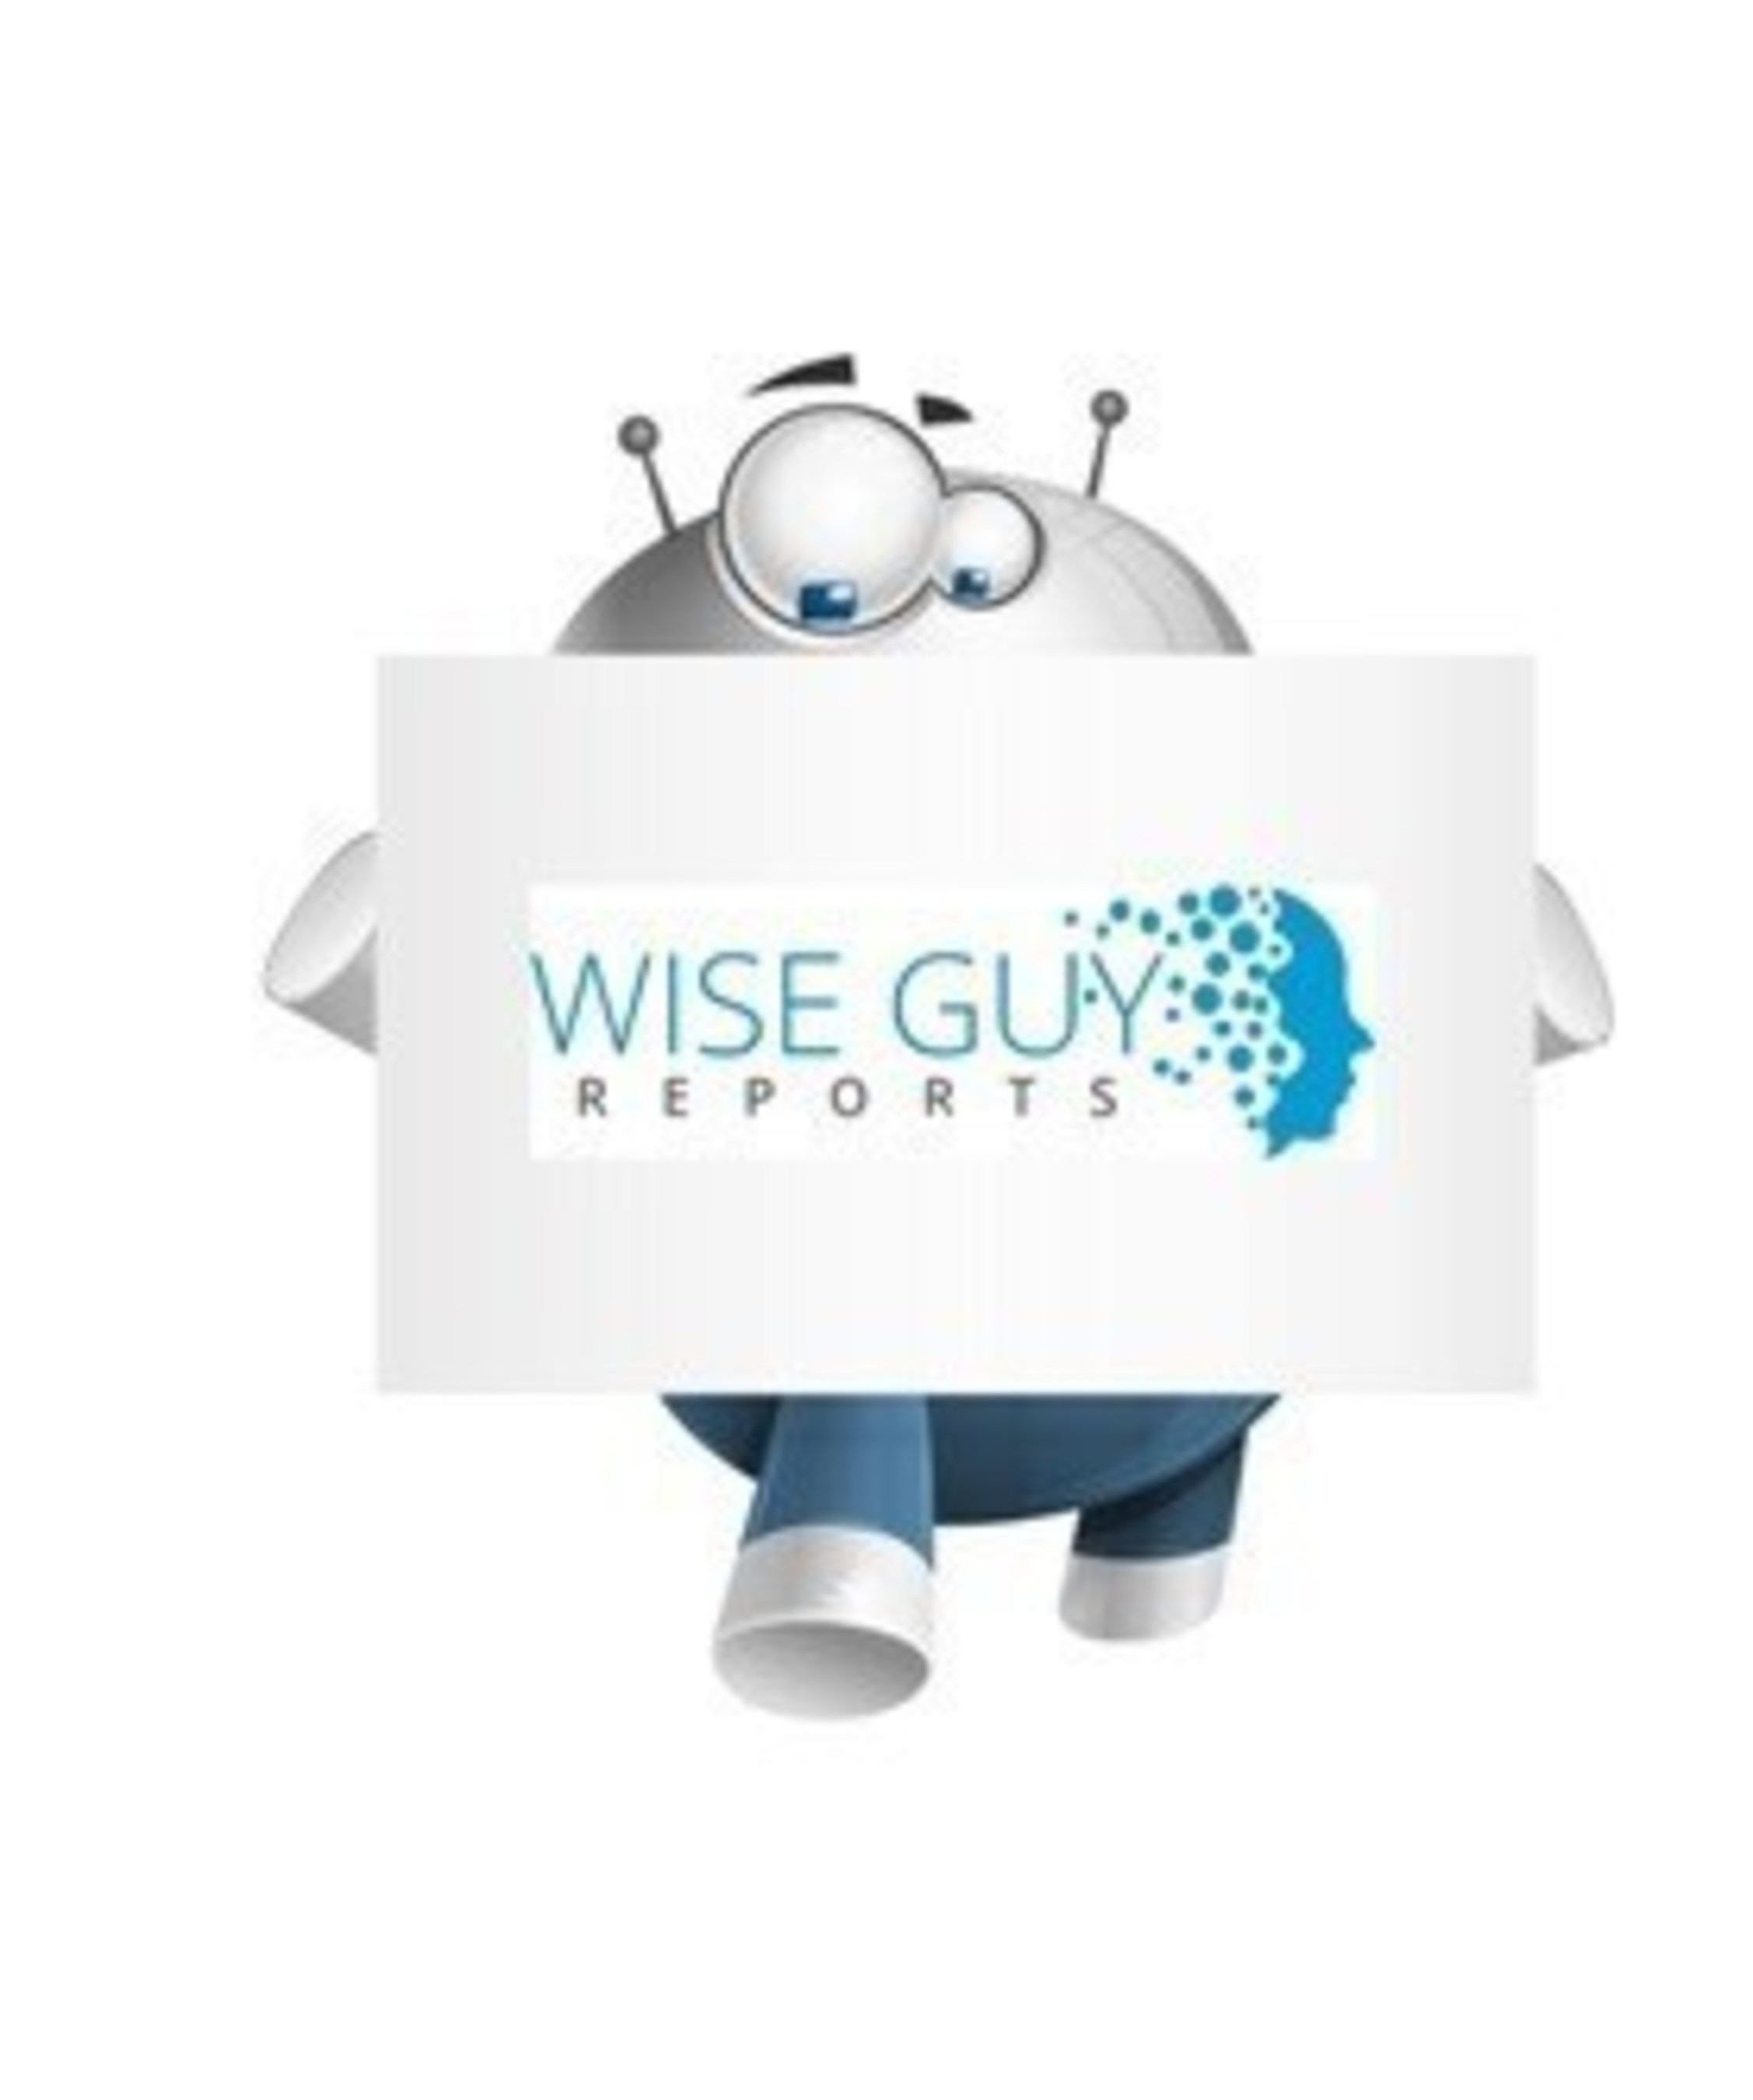 Global 3G 4G Enabled Mobile Devices Market 2015 Analysis and Forecasts to 2019 Research Report Available at WiseGuyReports.com